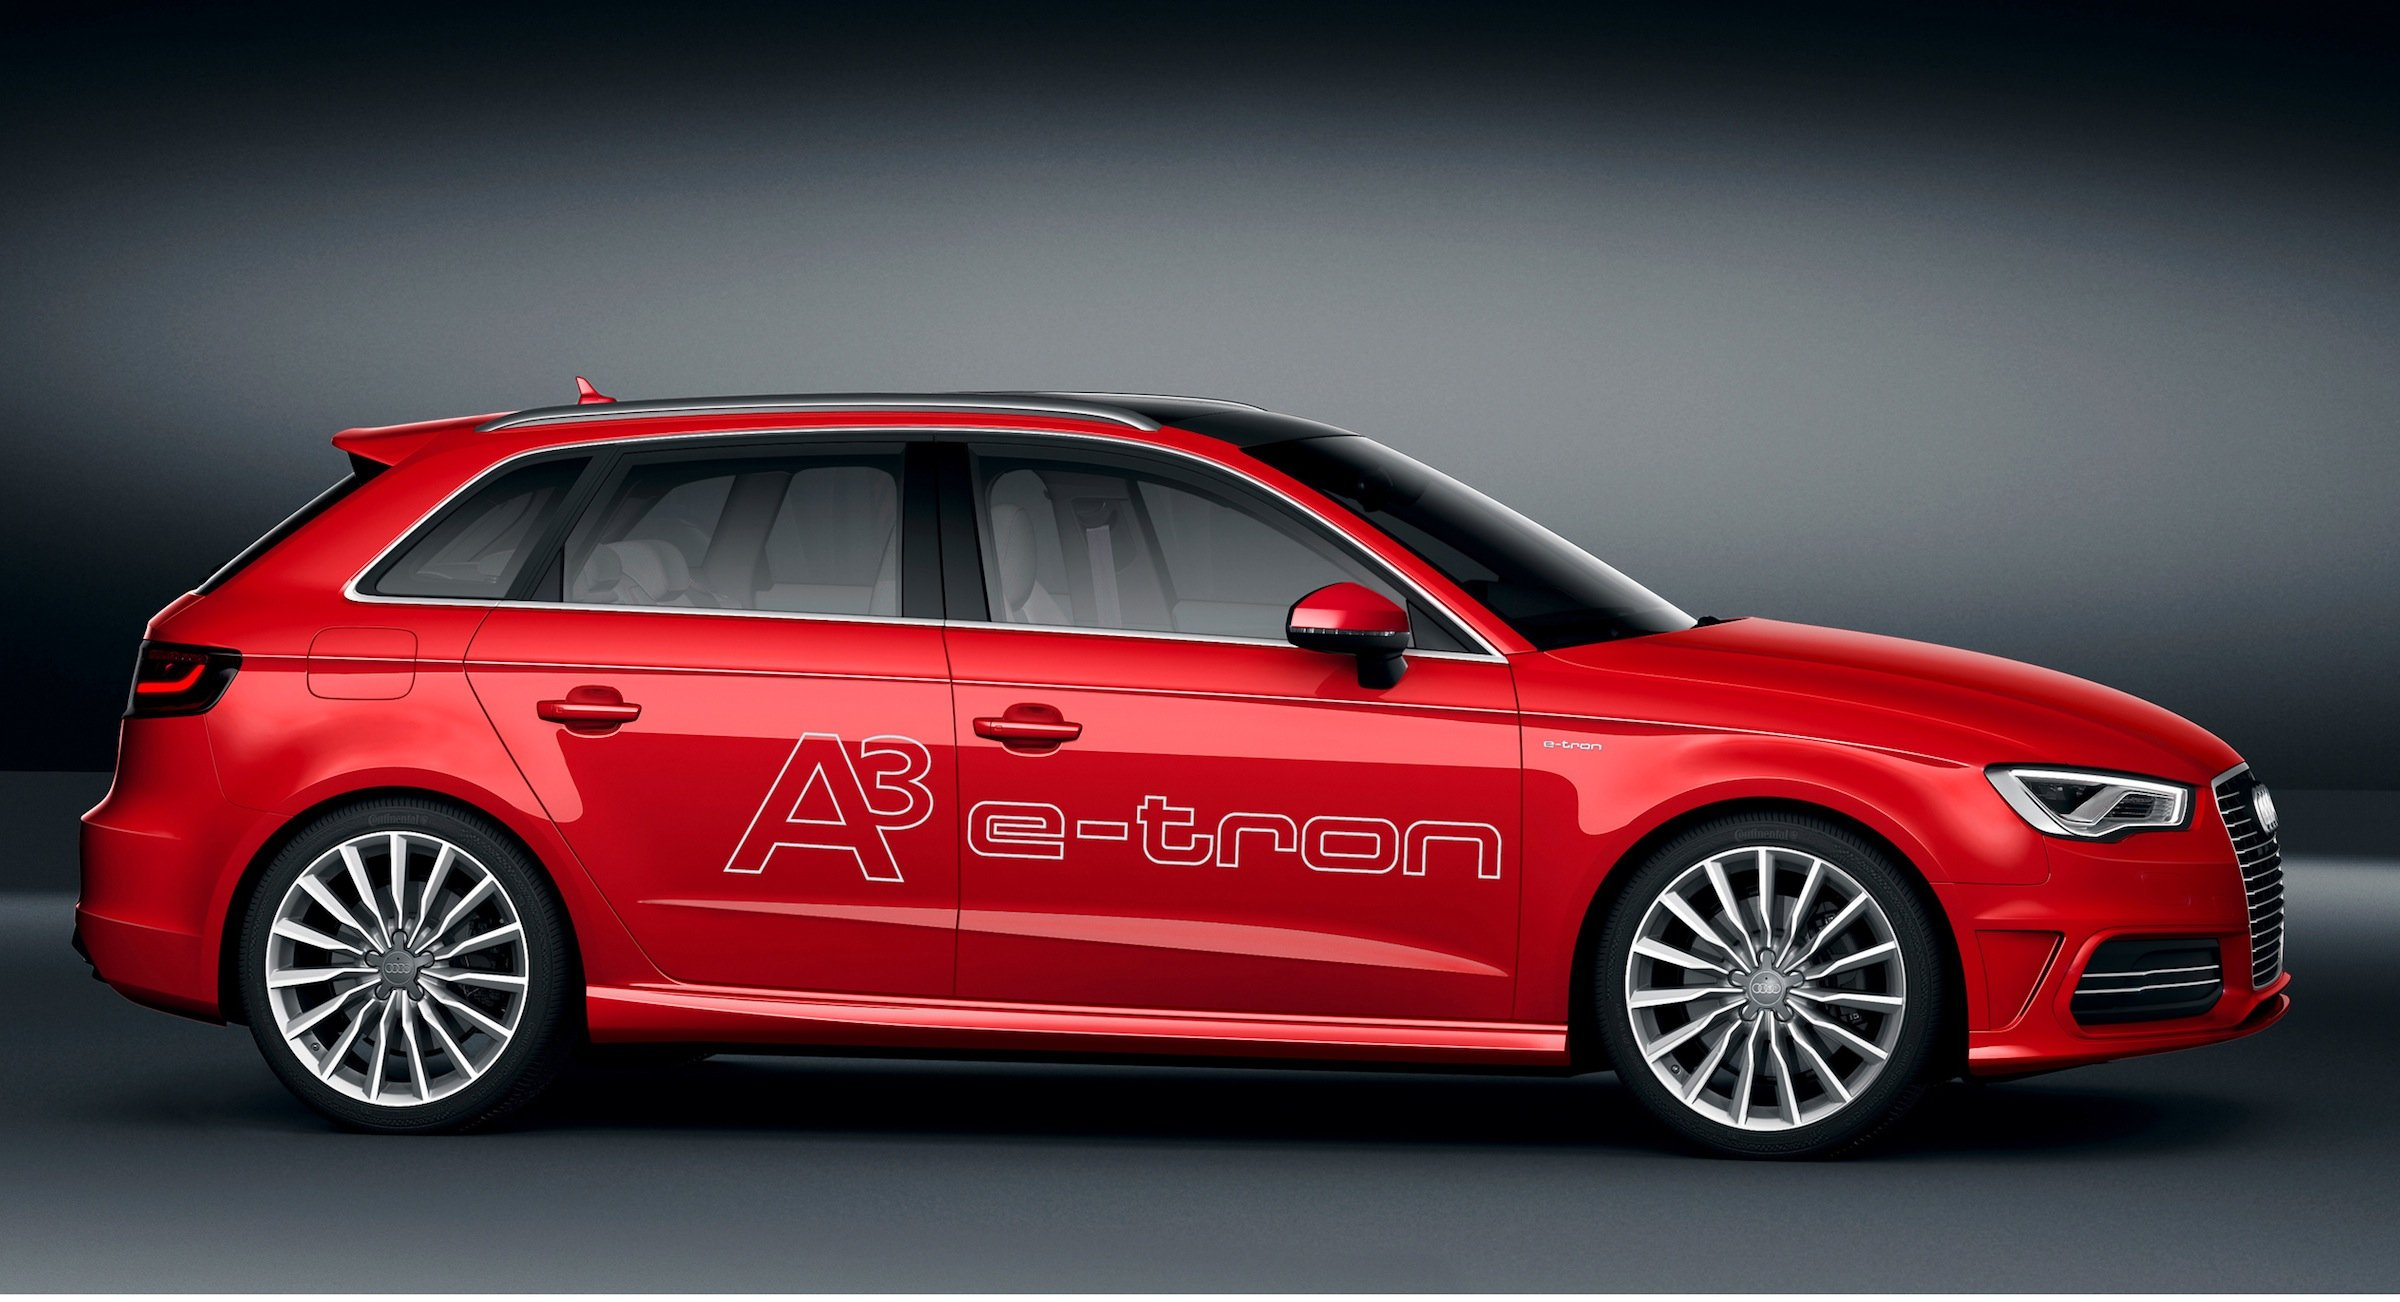 audi a3 e tron concept nails 1 5l 100km fuel economy photos 1 of 3. Black Bedroom Furniture Sets. Home Design Ideas